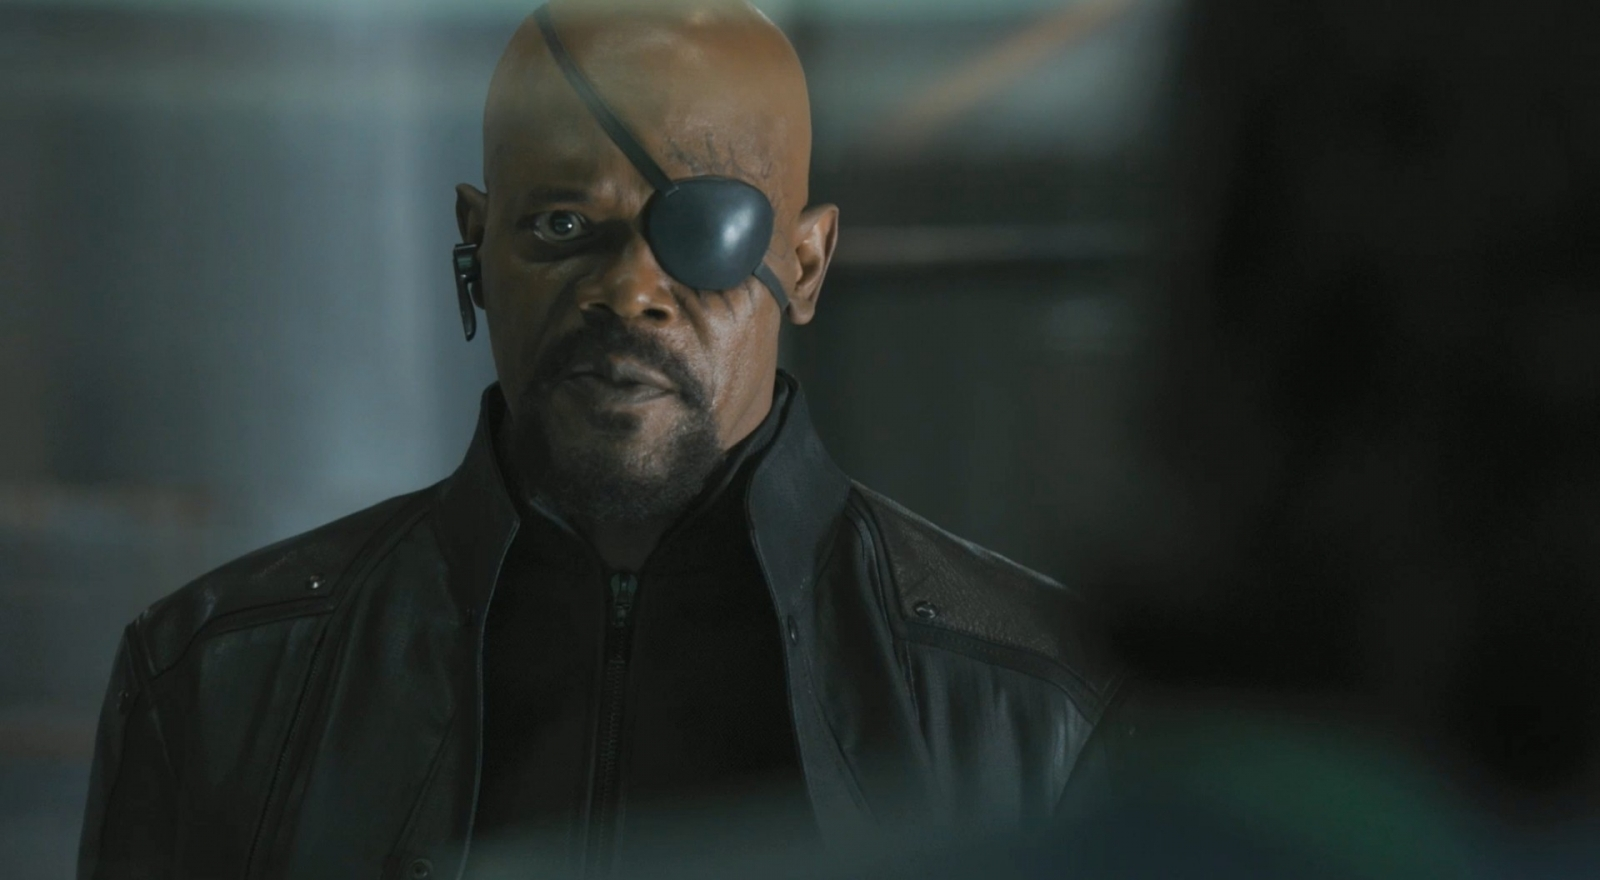 Samuel L Jackson miffed that he won't be in Marvel's Black Panther